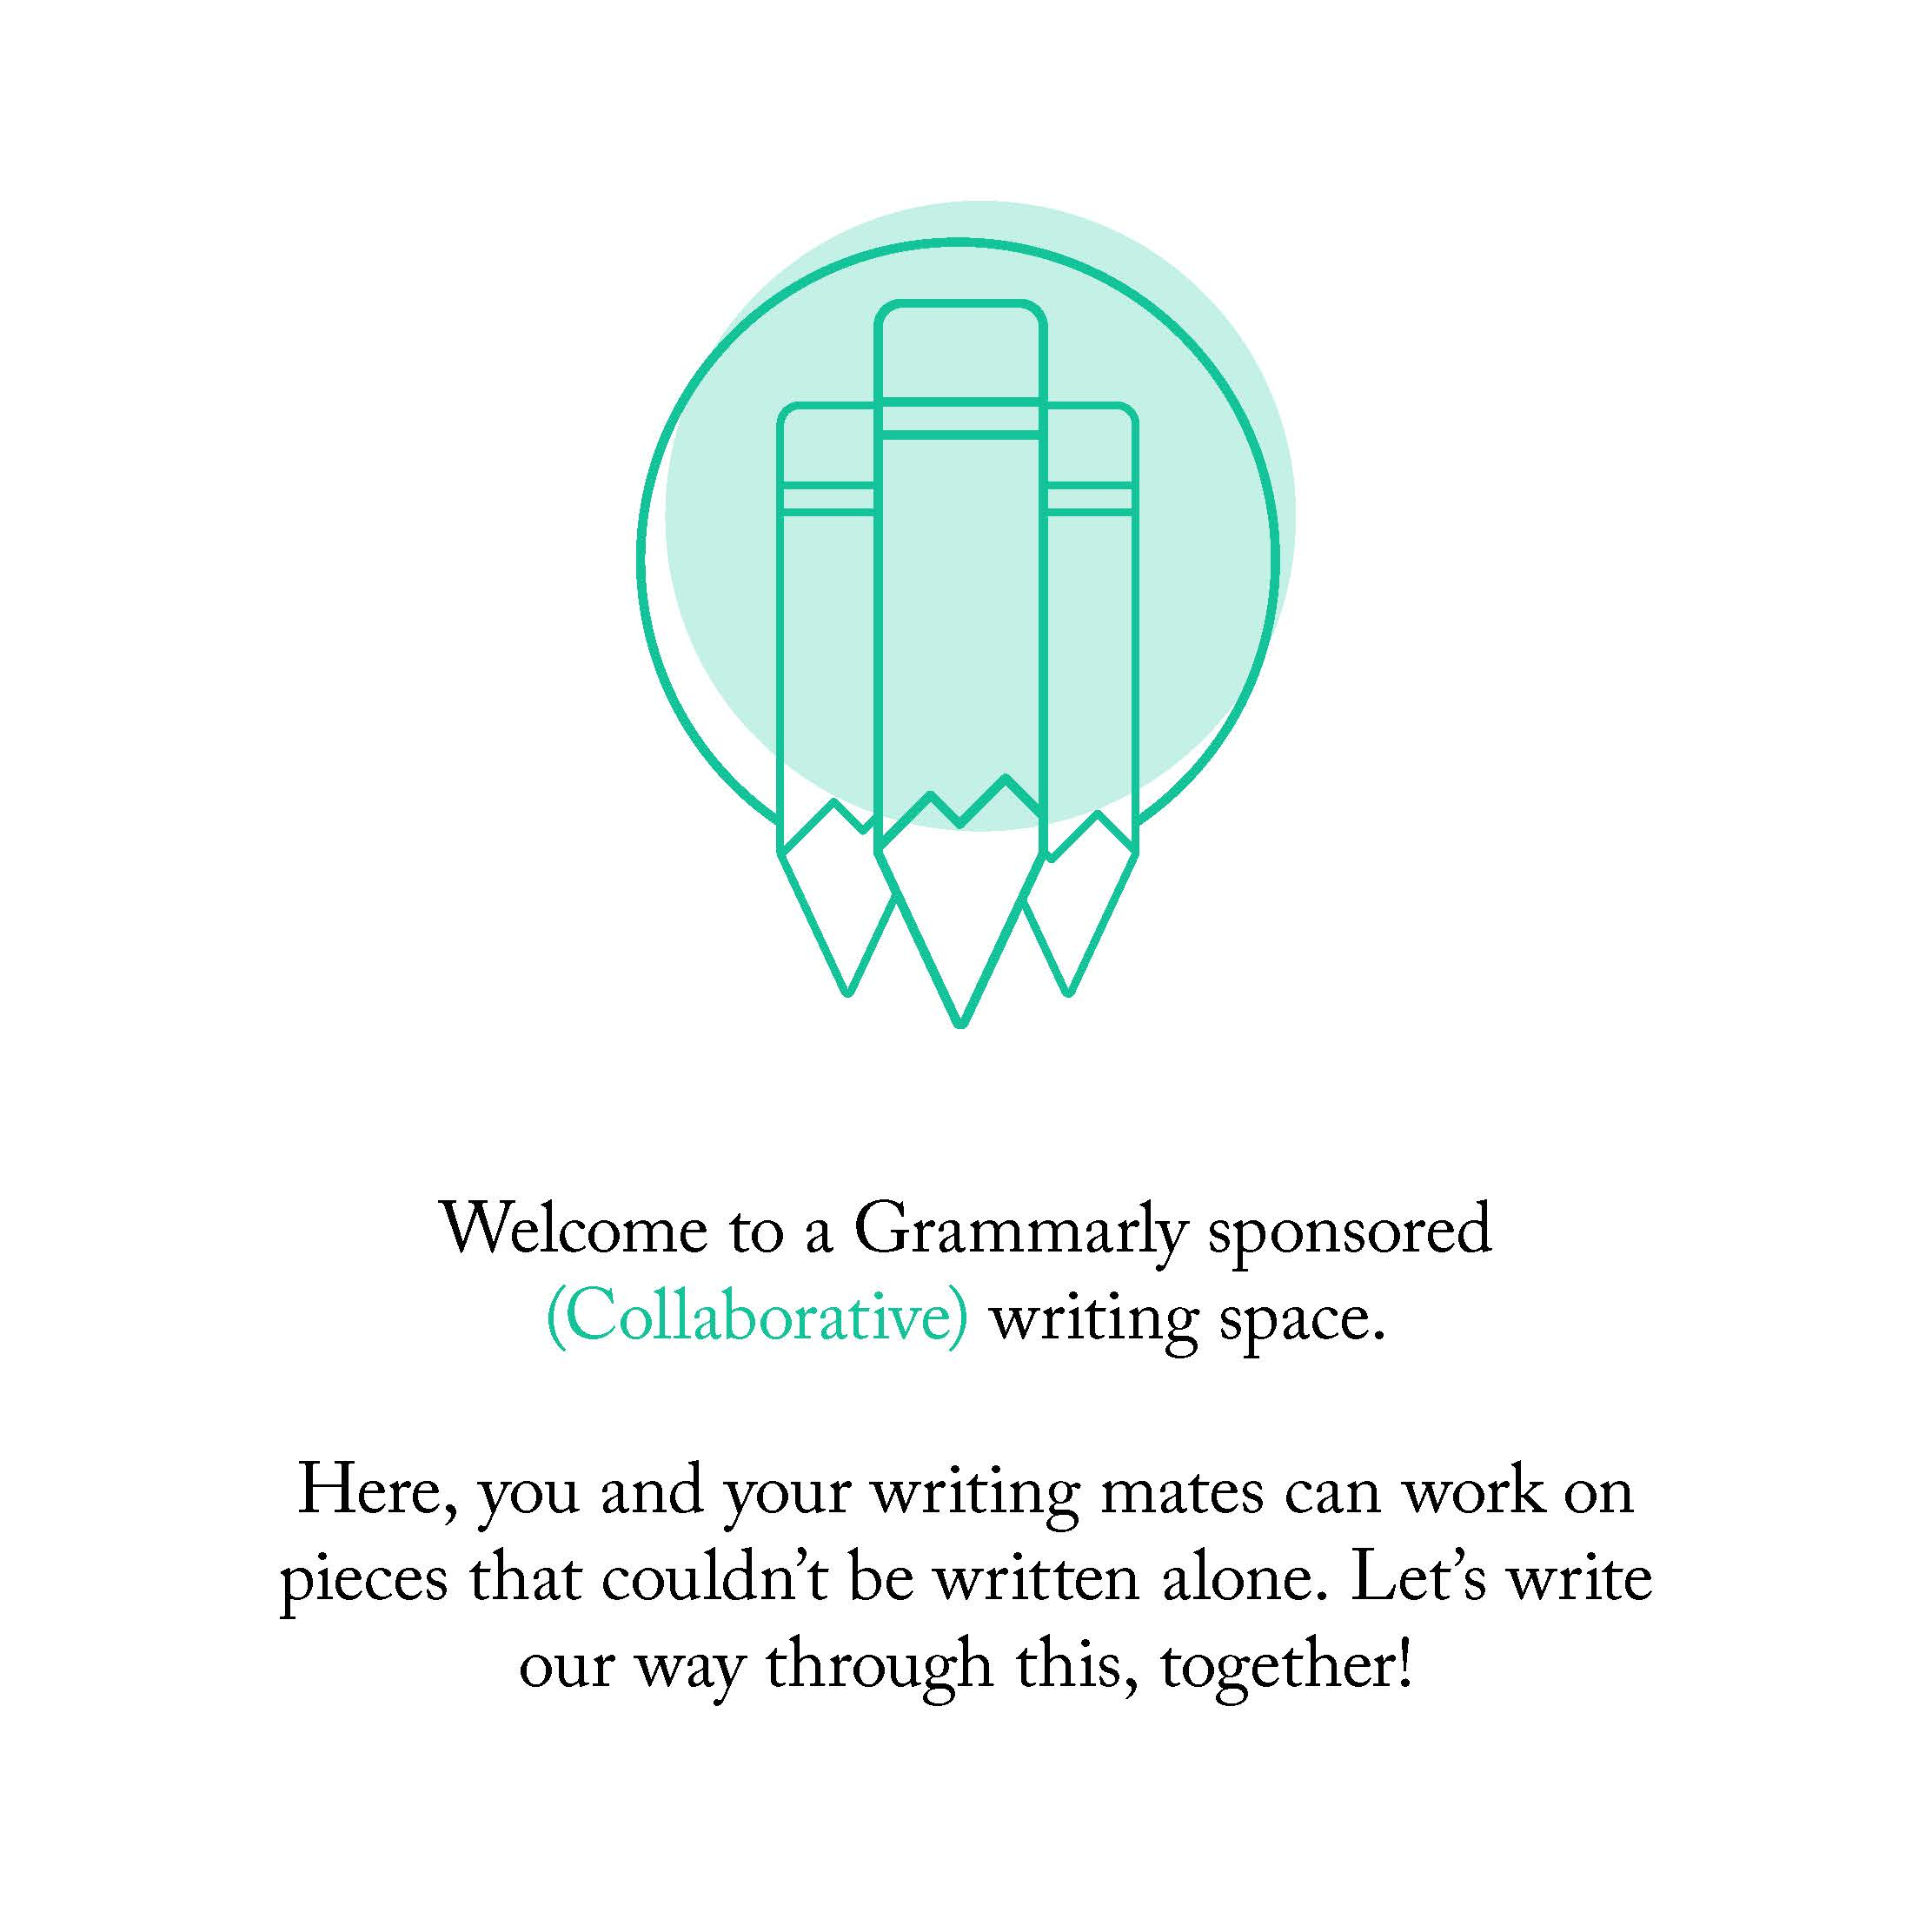 Grammarly_Icon_Page_1.jpg